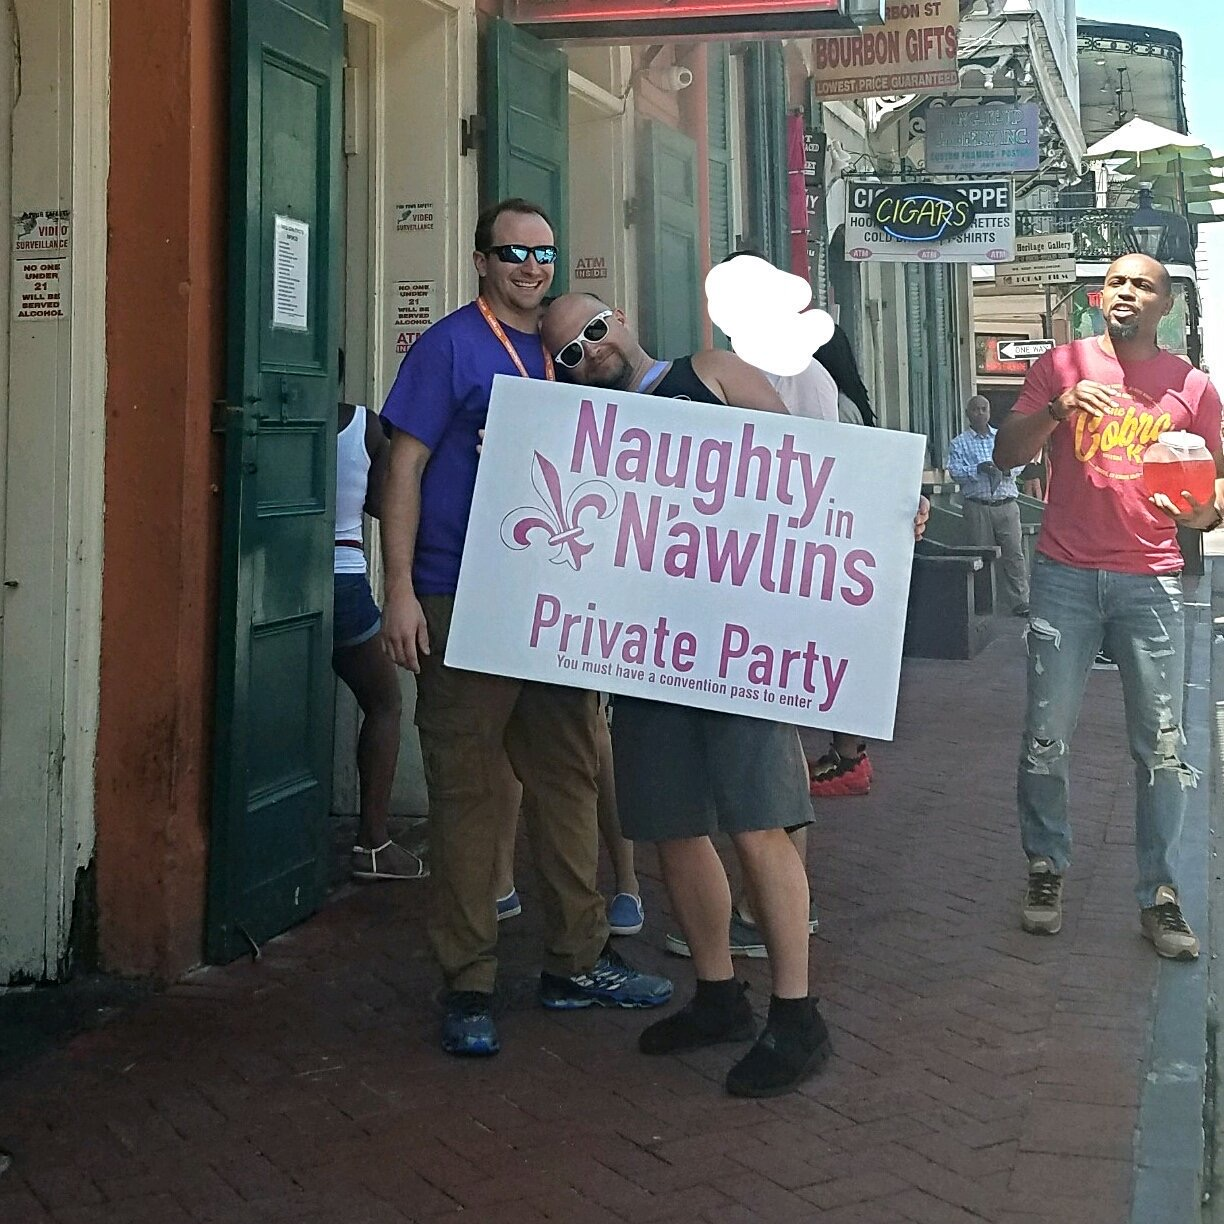 Our first time to Naughty N'awlins – Part 2